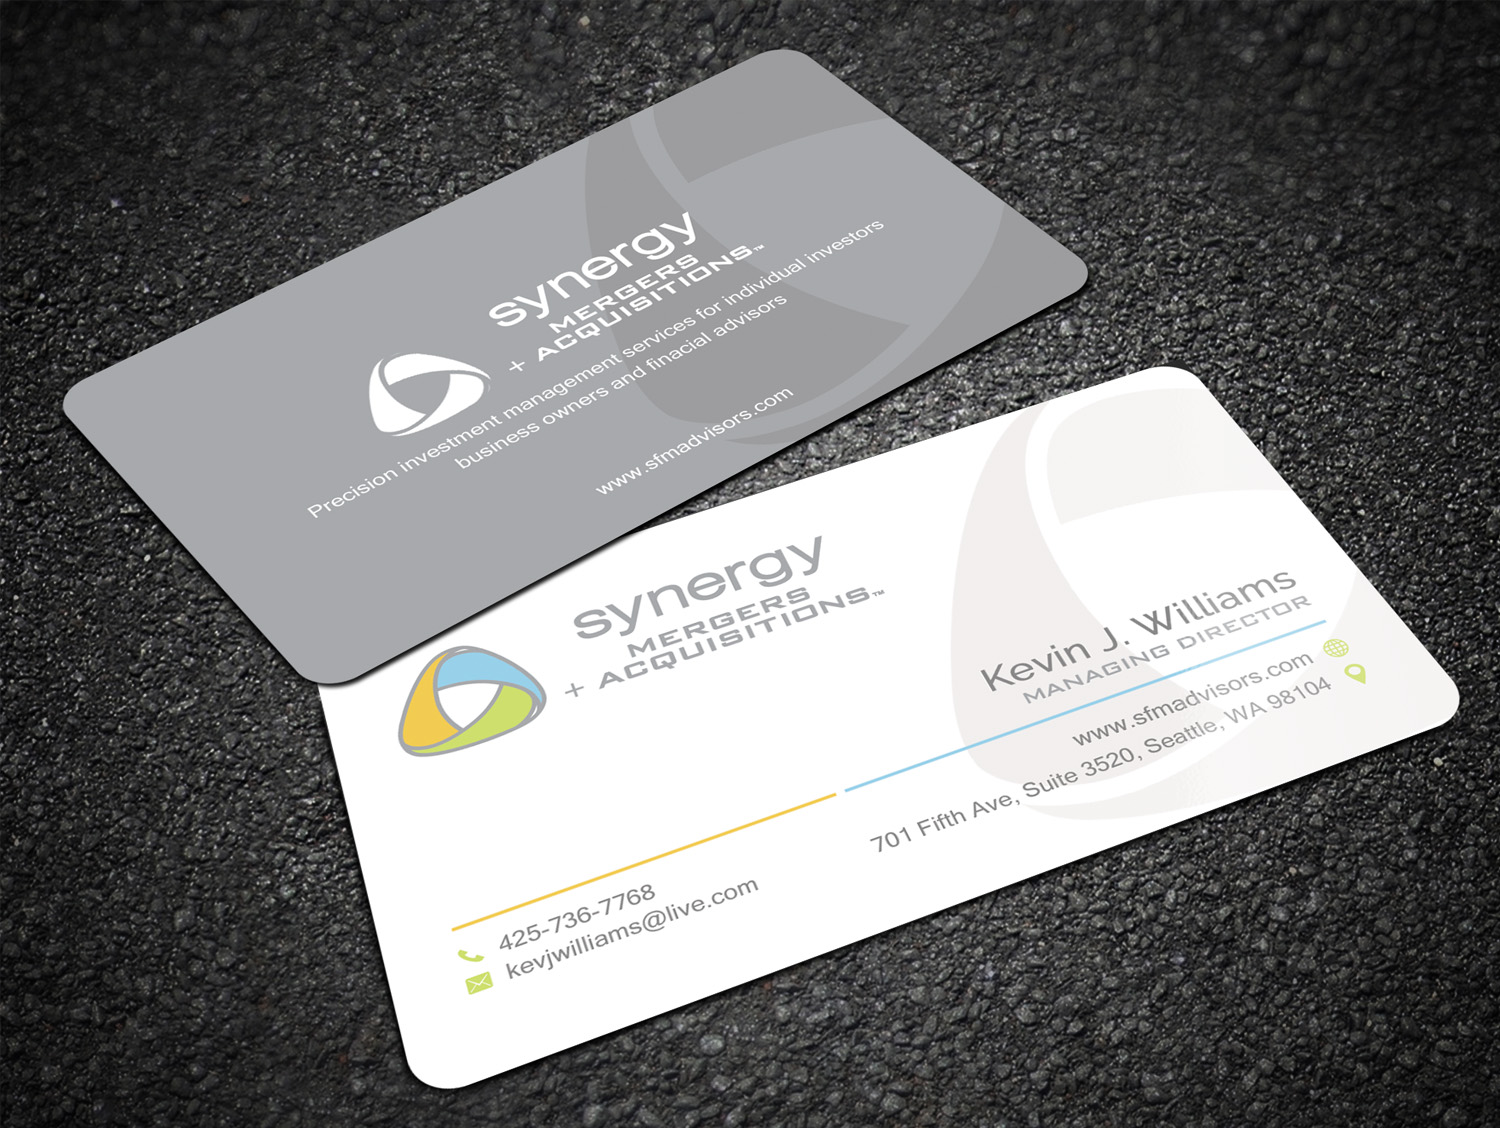 Llc owners business cards ultimate user guide modern professional real estate business card design for gennaker rh designcrowd com credit for llc cool business cards reheart Gallery